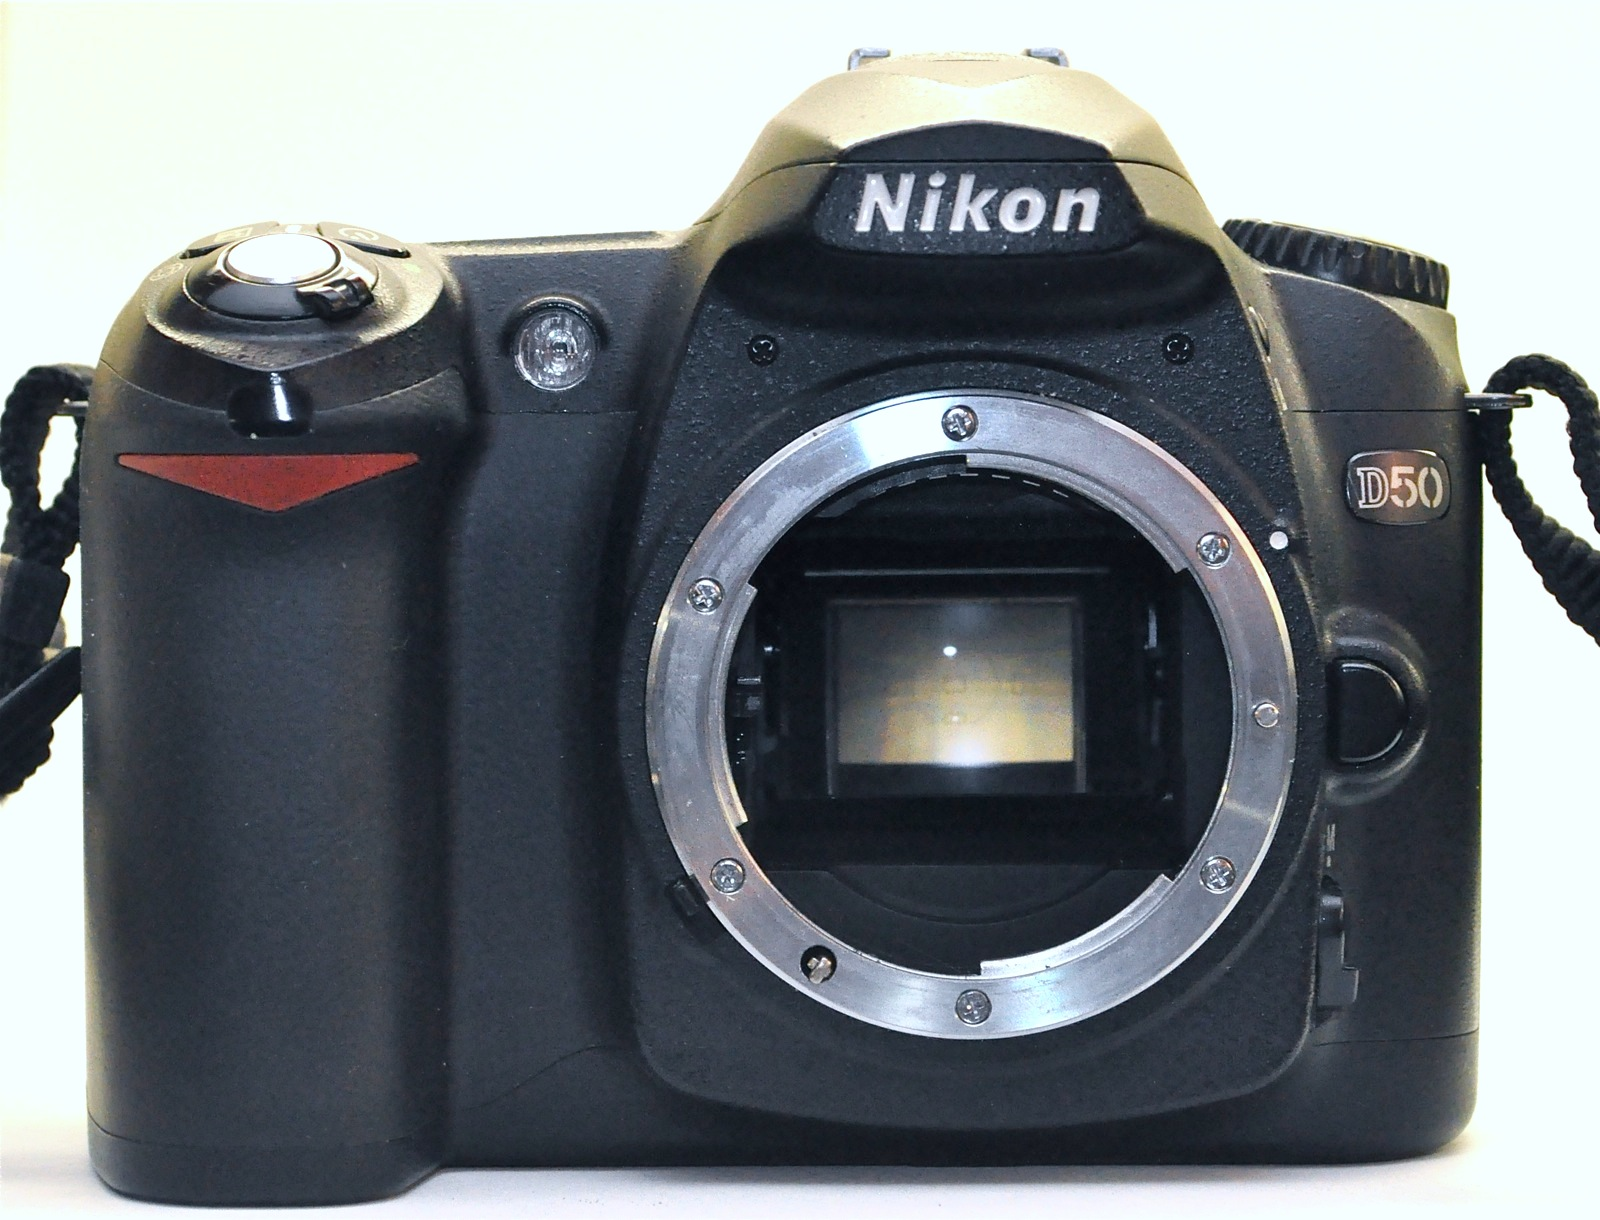 Nikon D50 6.1 MP digit...